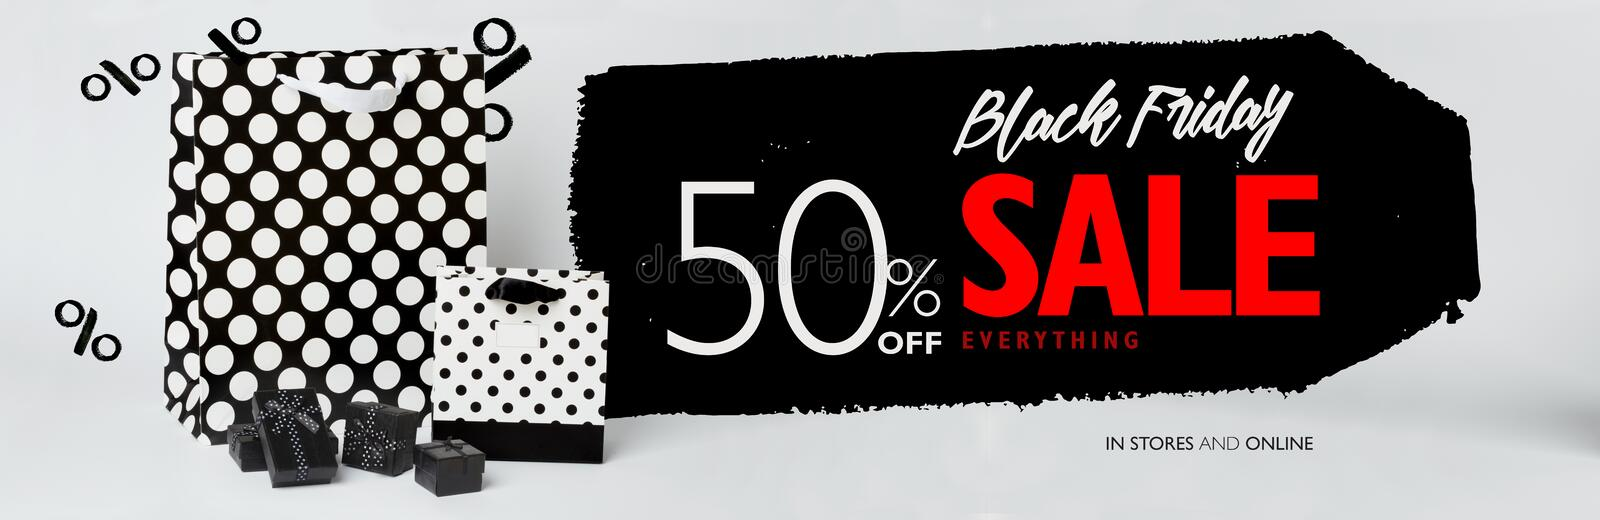 Black Friday sale banner, with small black gift-boxes, and black and white gift-bags with polka dots. stock photo